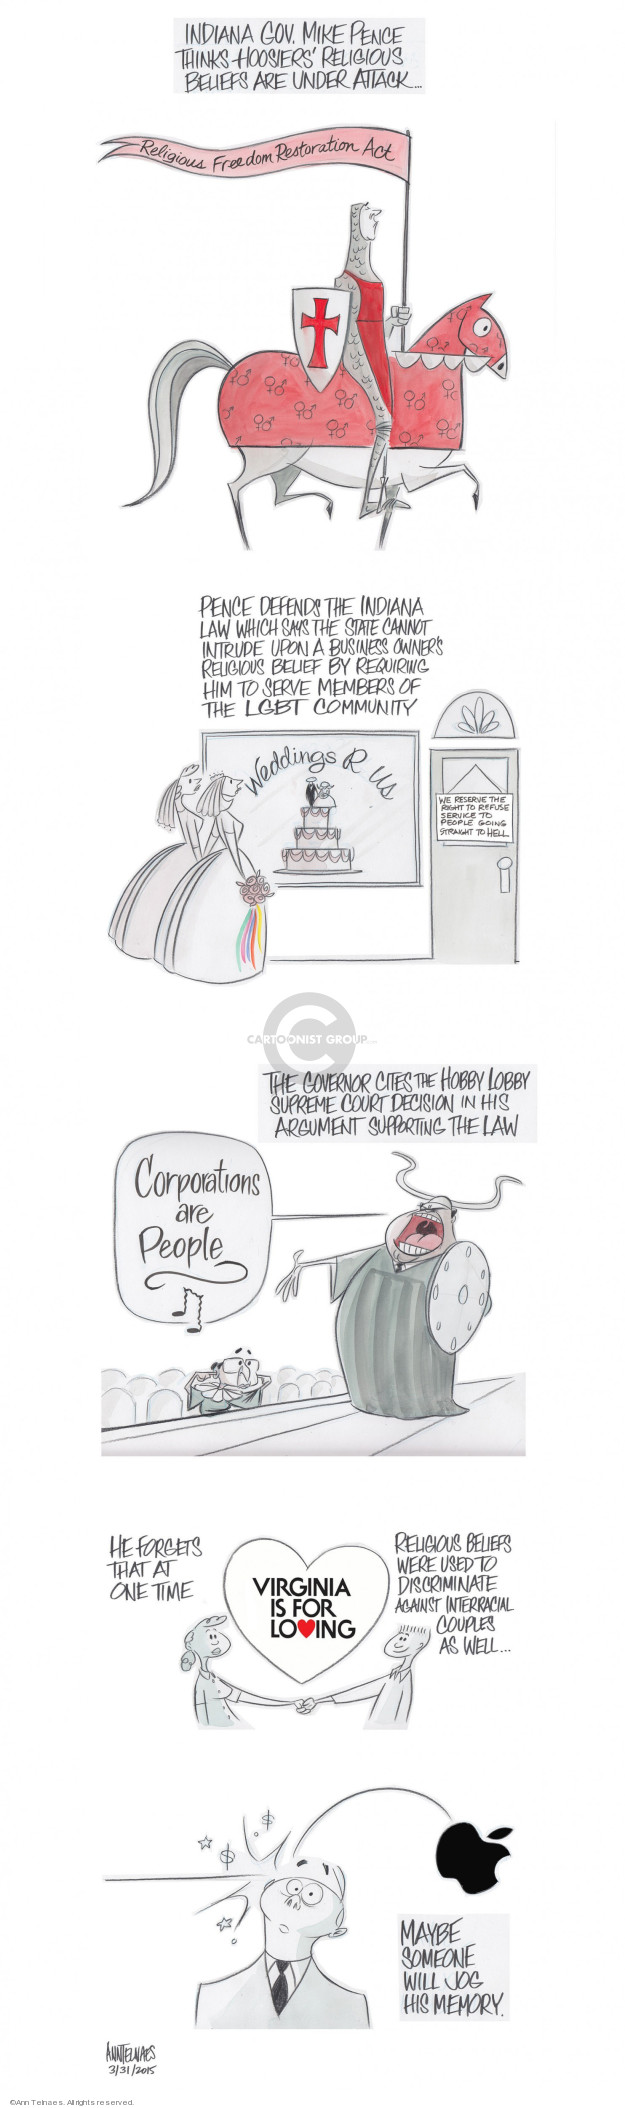 Cartoonist Ann Telnaes  Ann Telnaes' Editorial Cartoons 2015-03-31 discrimination